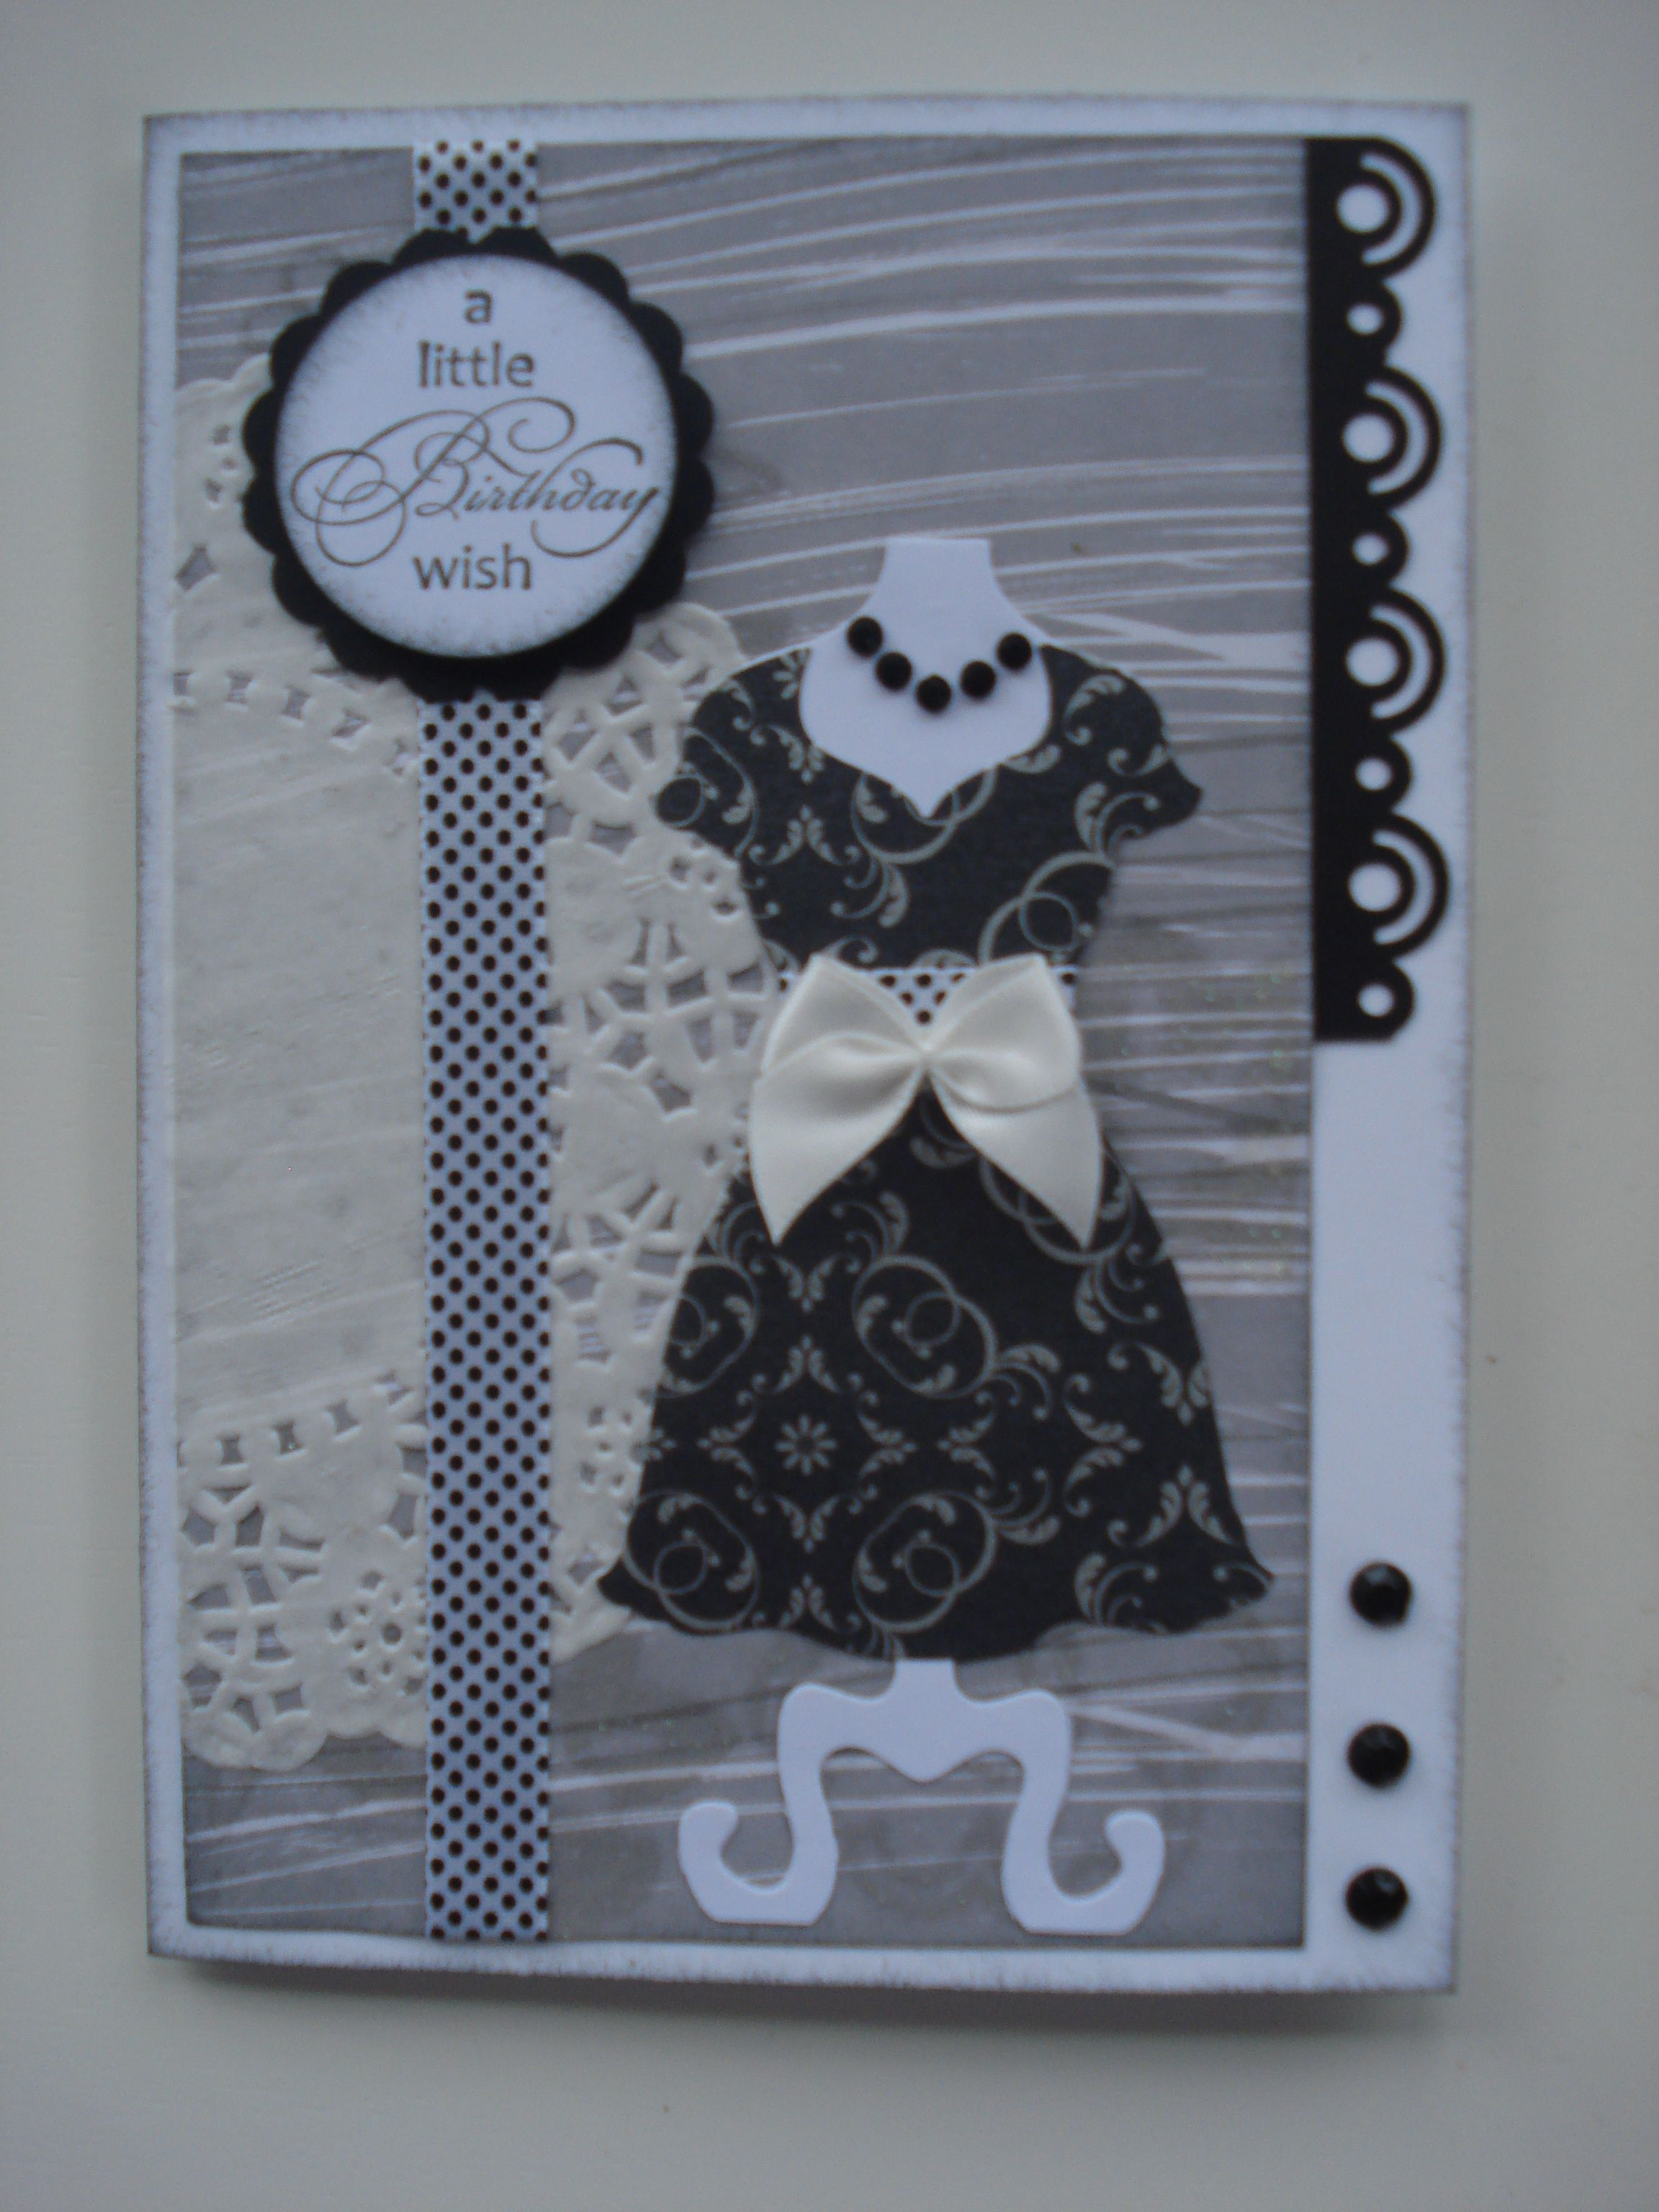 And yet another quick card with a doily and my Stampin Up dress die.